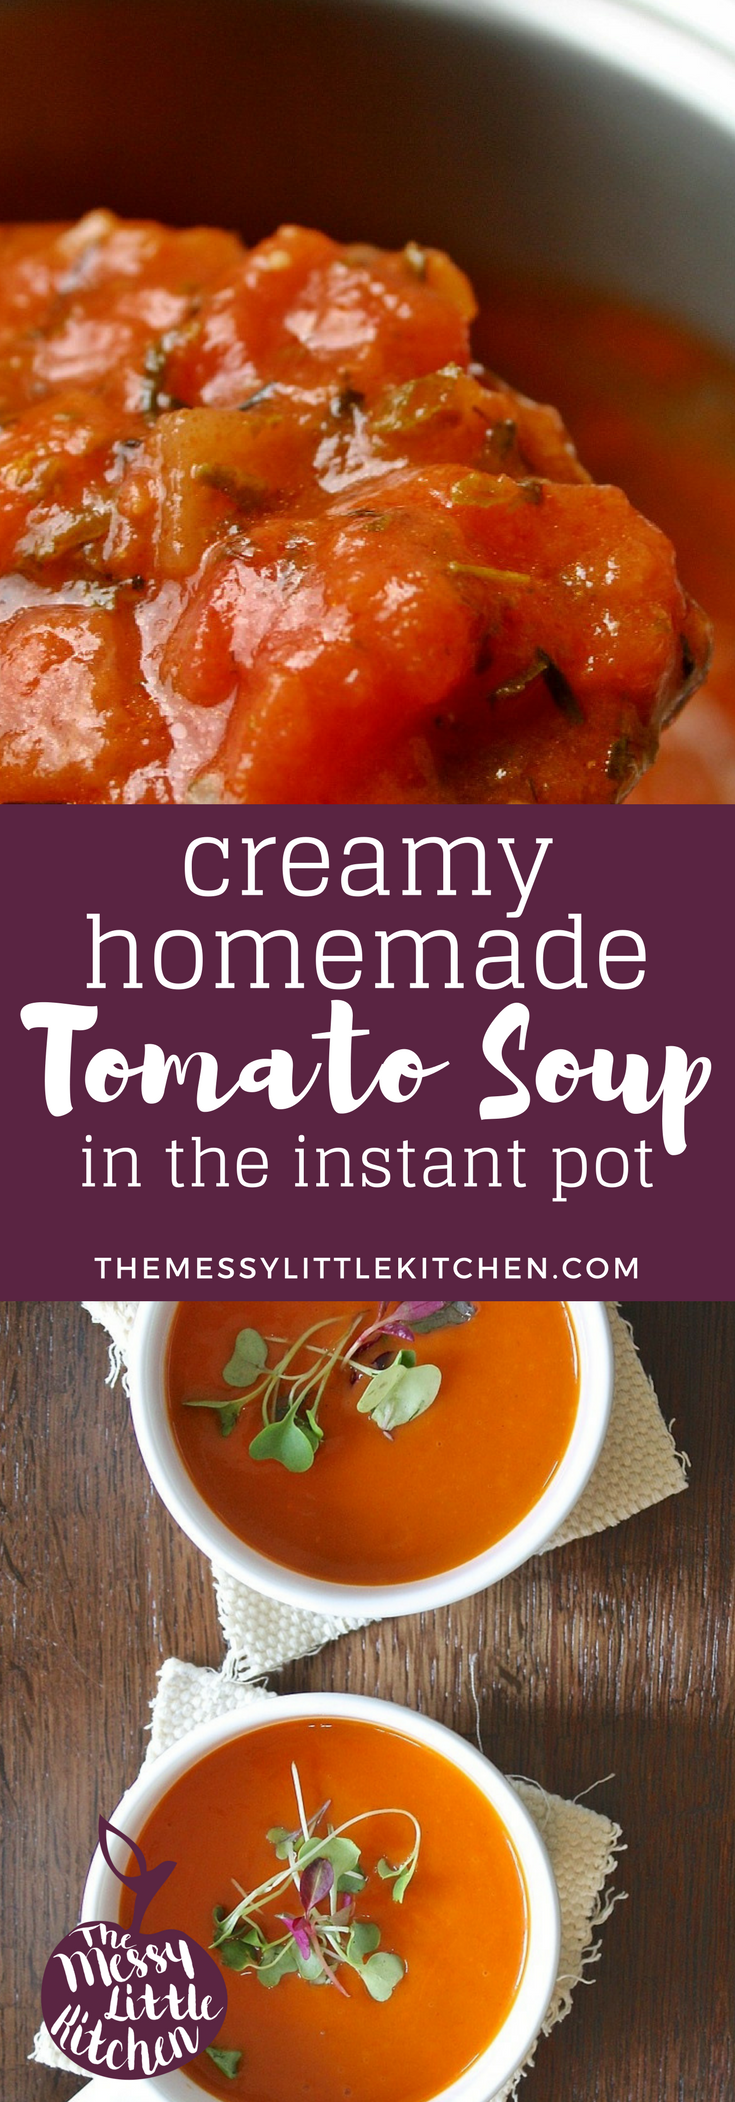 Creamy Homemade Tomato Soup in the Instant Pot tall.png